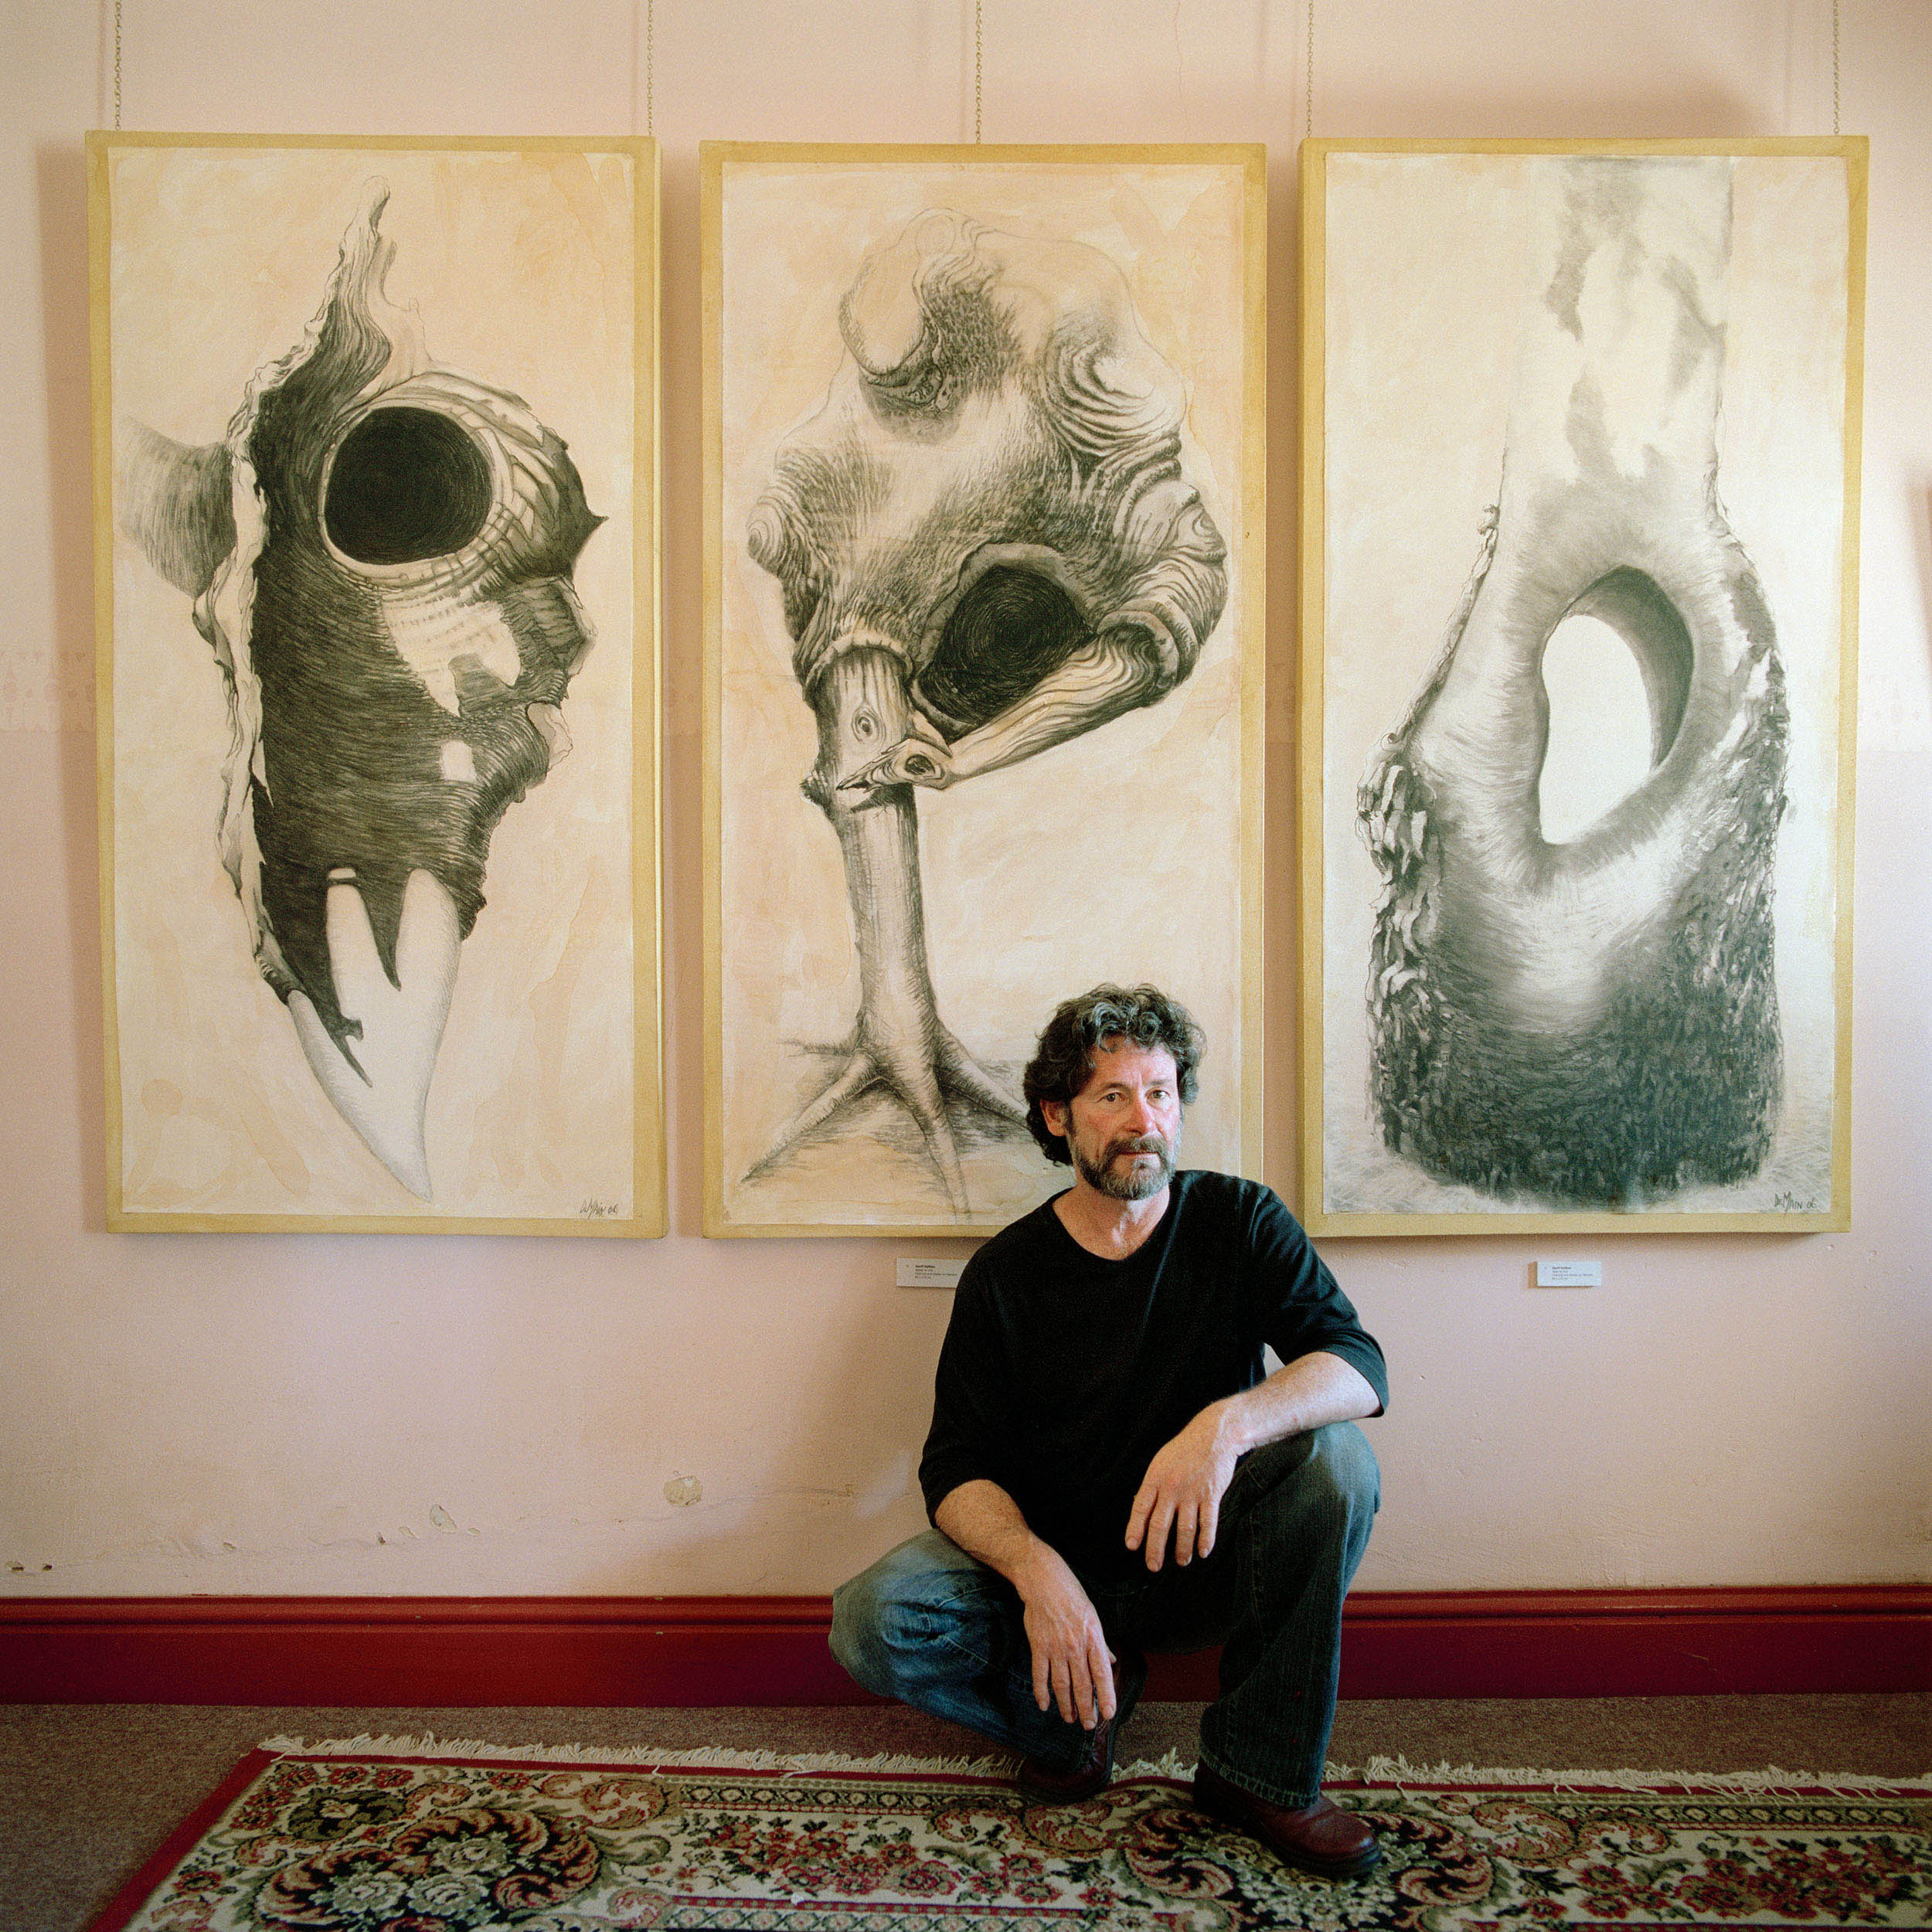 Artist Geoff DeMain at his gallery in Broken Hill, NSW, 2008. The artist's drawings reflect the Government's enabling of the continuing destruction of the Darling River through the allegory of the 'Three Monkeys.'